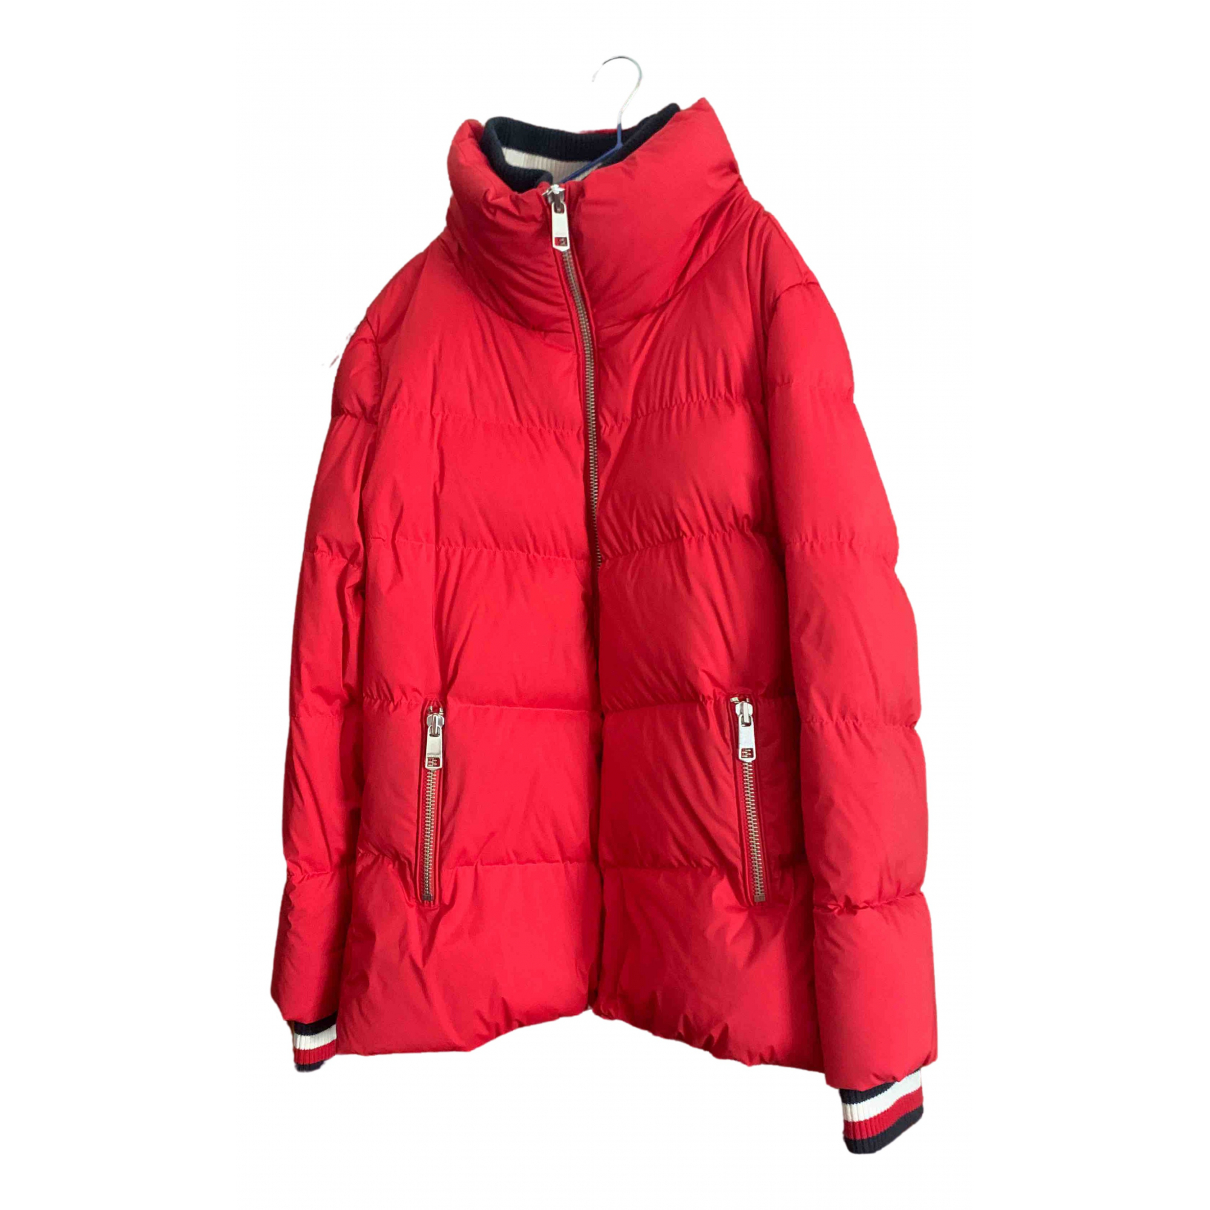 Tommy Hilfiger \N Red coat for Women XXL International